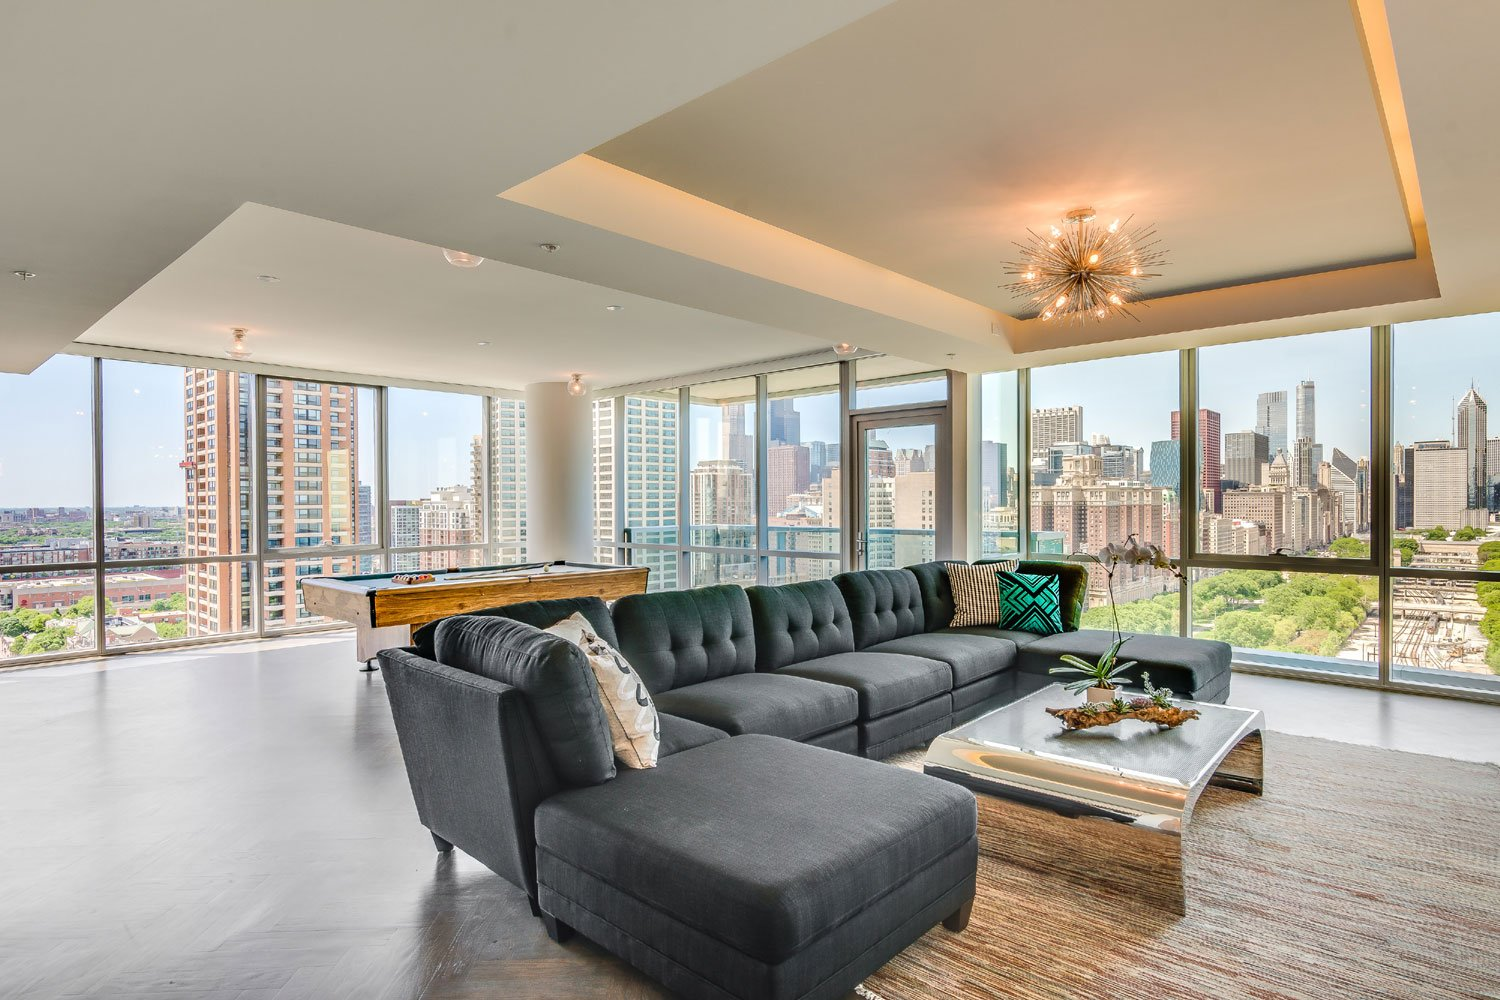 This ultra-luxurious residence takes in sweeping vistas of downtown Chicago and the natural beauty of nearby Grant Park and Lake Michigan, as well as such cultural assets as The Field Museum of Natural History.